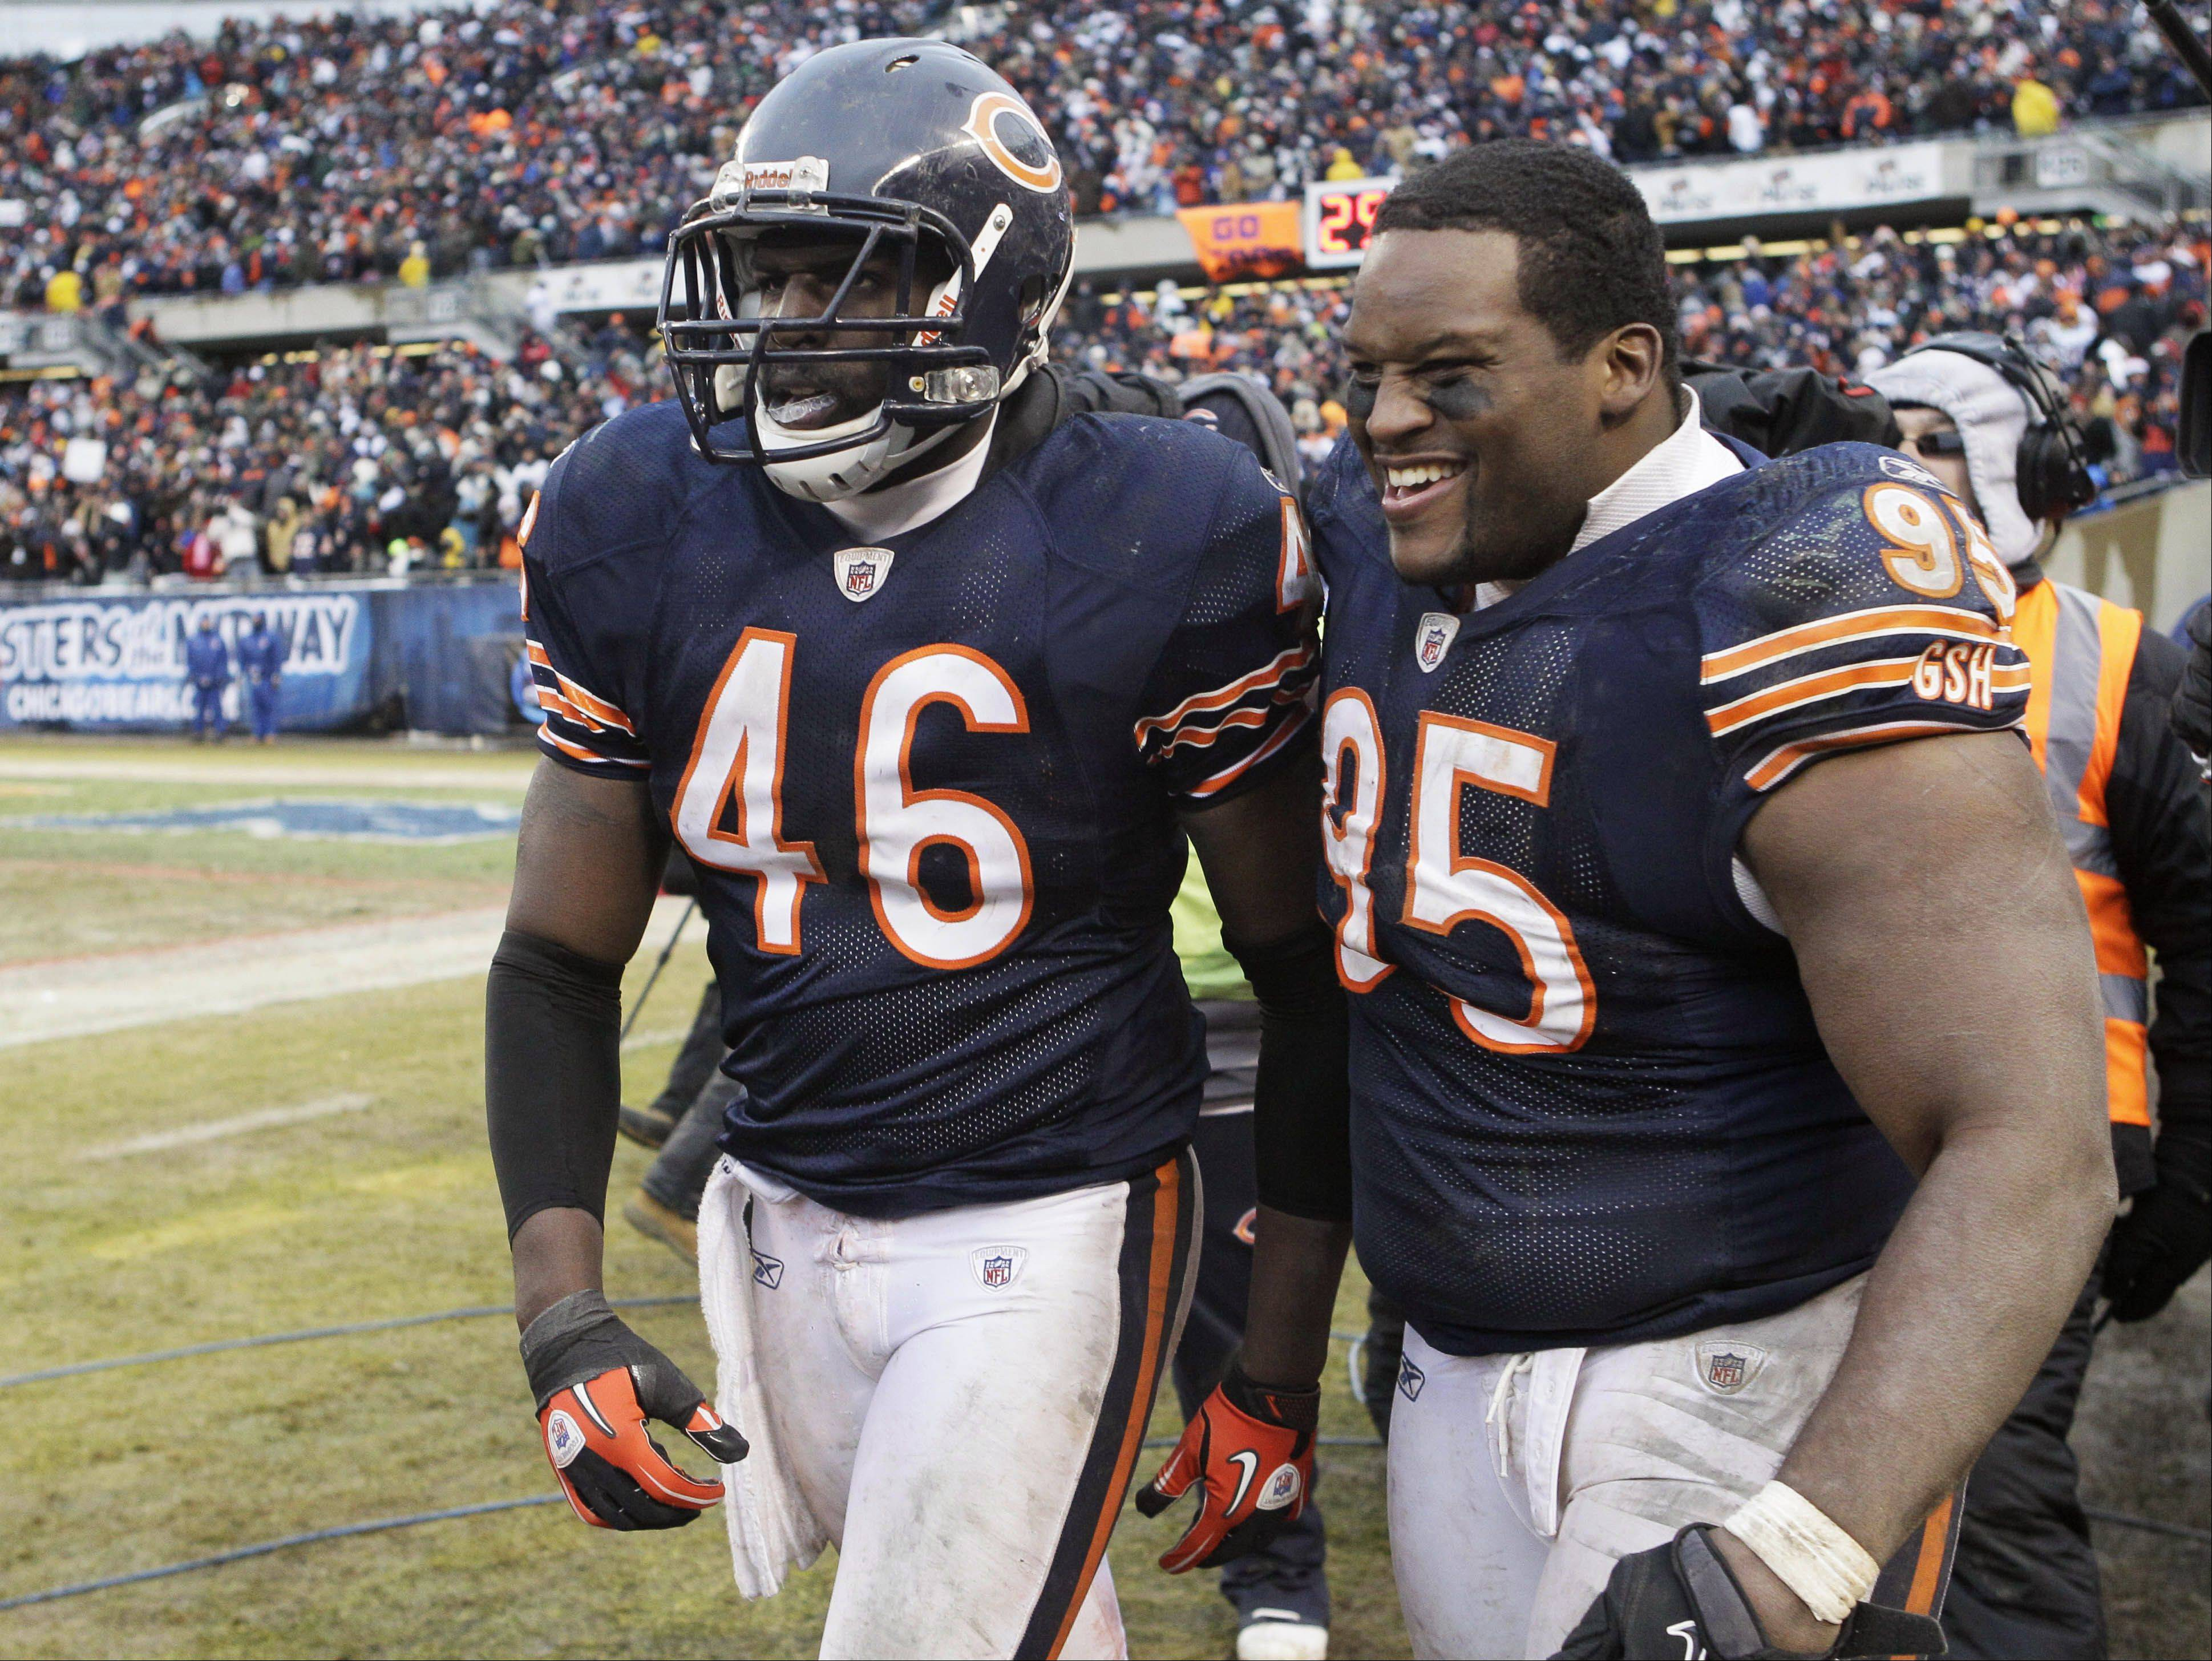 Chicago Bears safety Chris Harris (46) celebrates with Anthony Adams (95) after Harris' interception late in the NFL football game against the New York Jets on Sunday, Dec. 26, 2010, in Chicago. The Bears won 38-34.